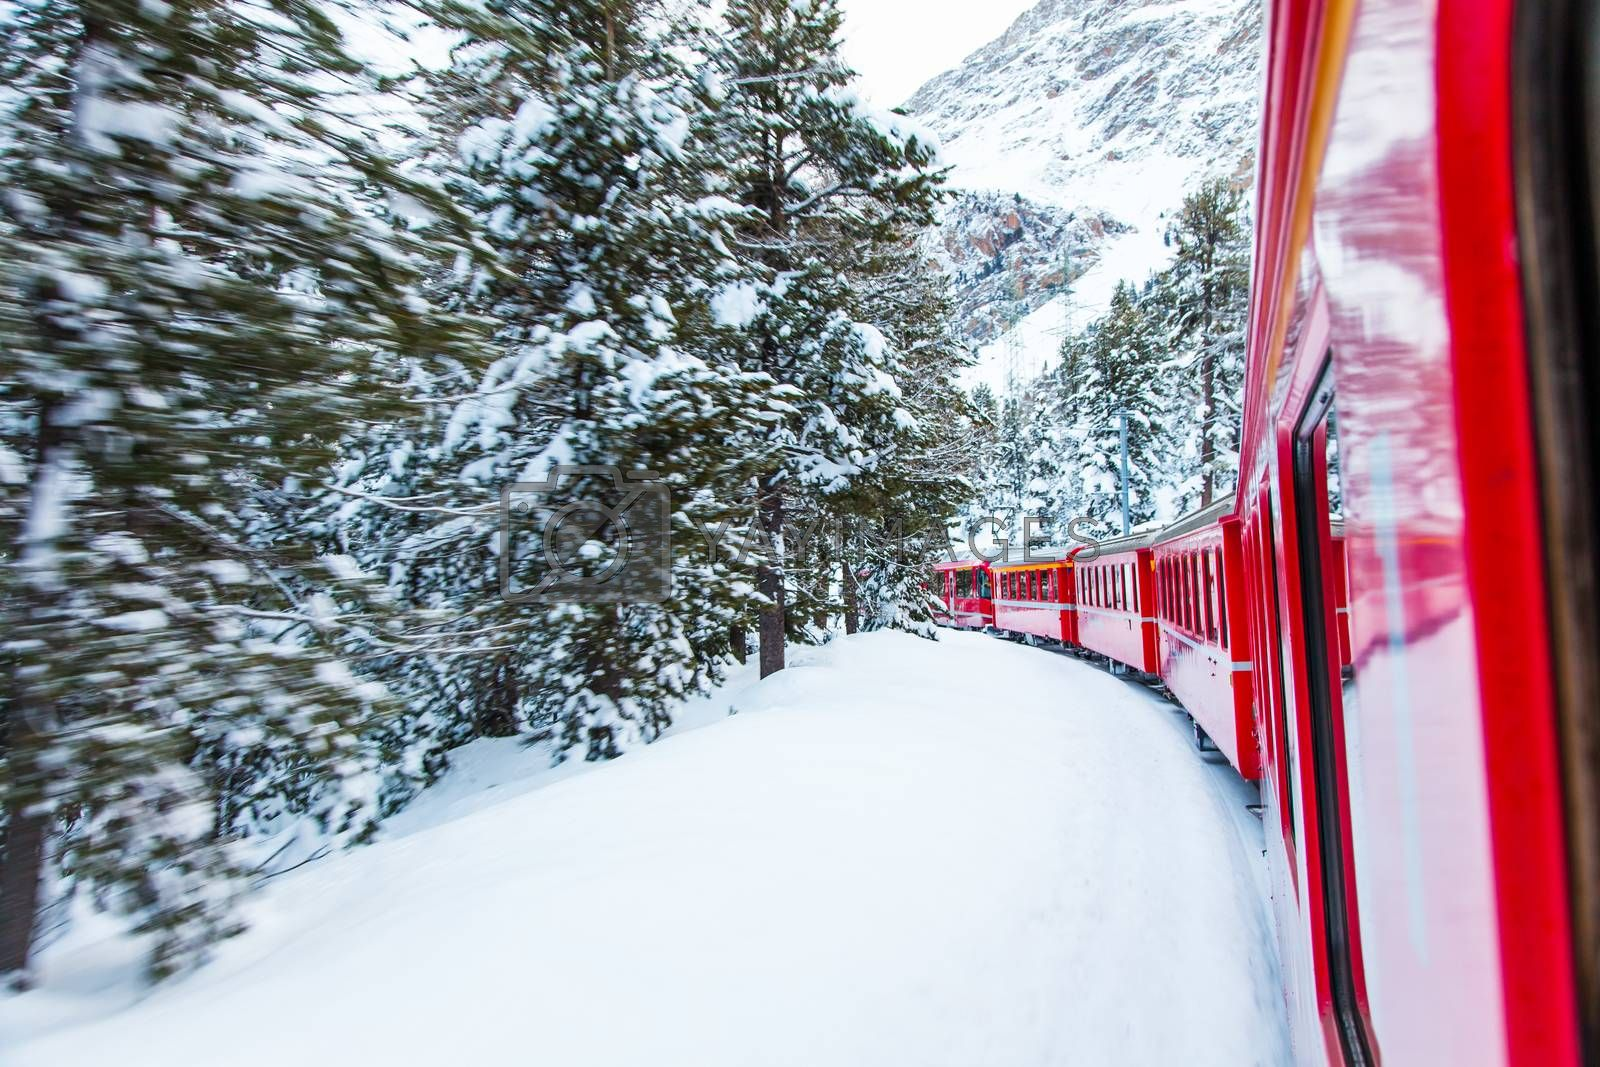 Train in the snow by Perseomedusa